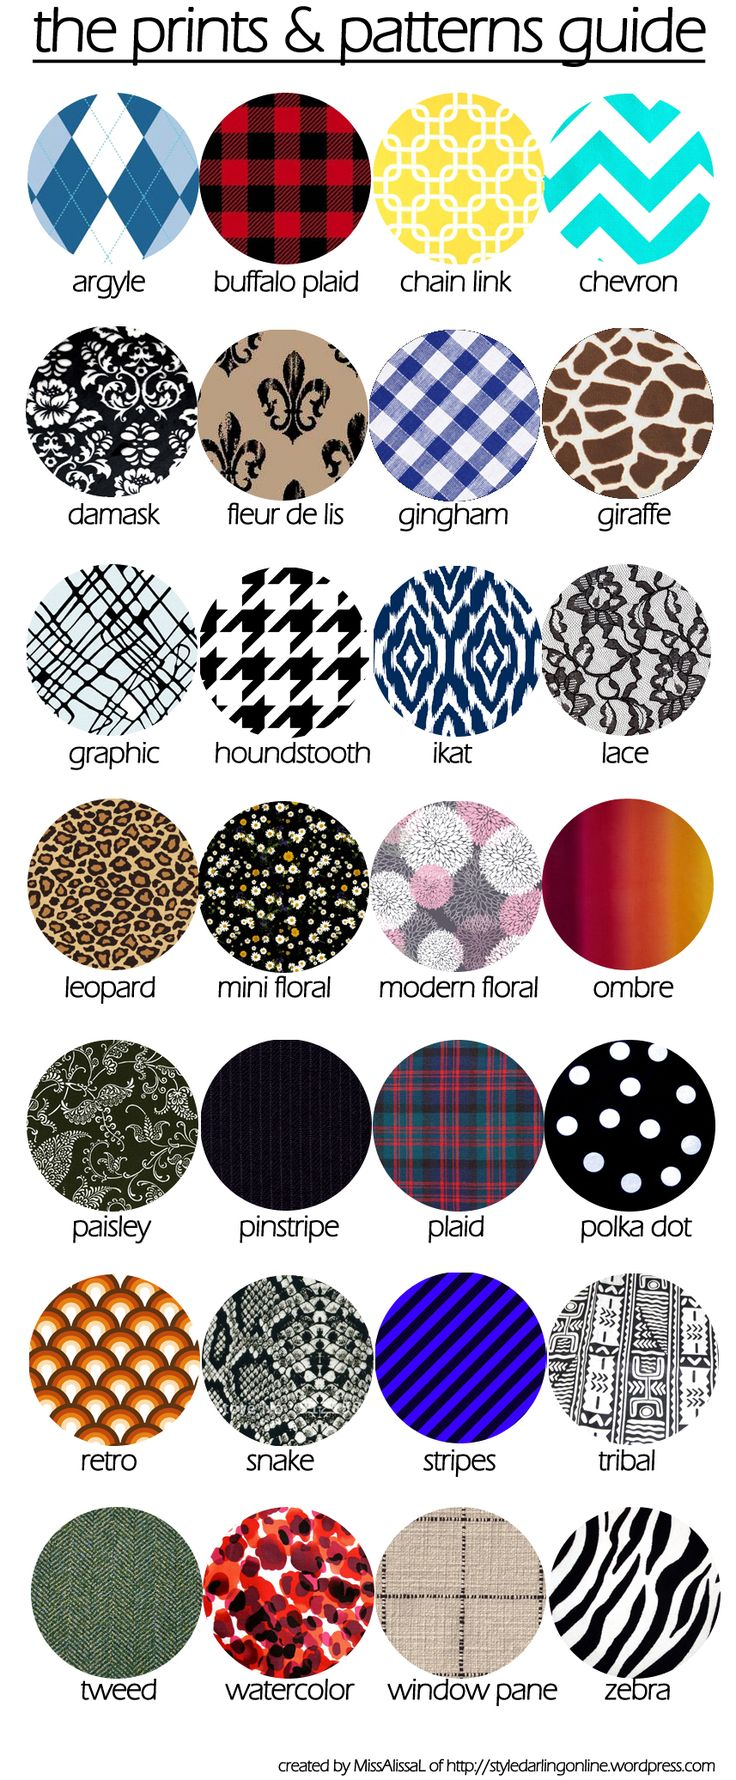 The guide to prints & patterns